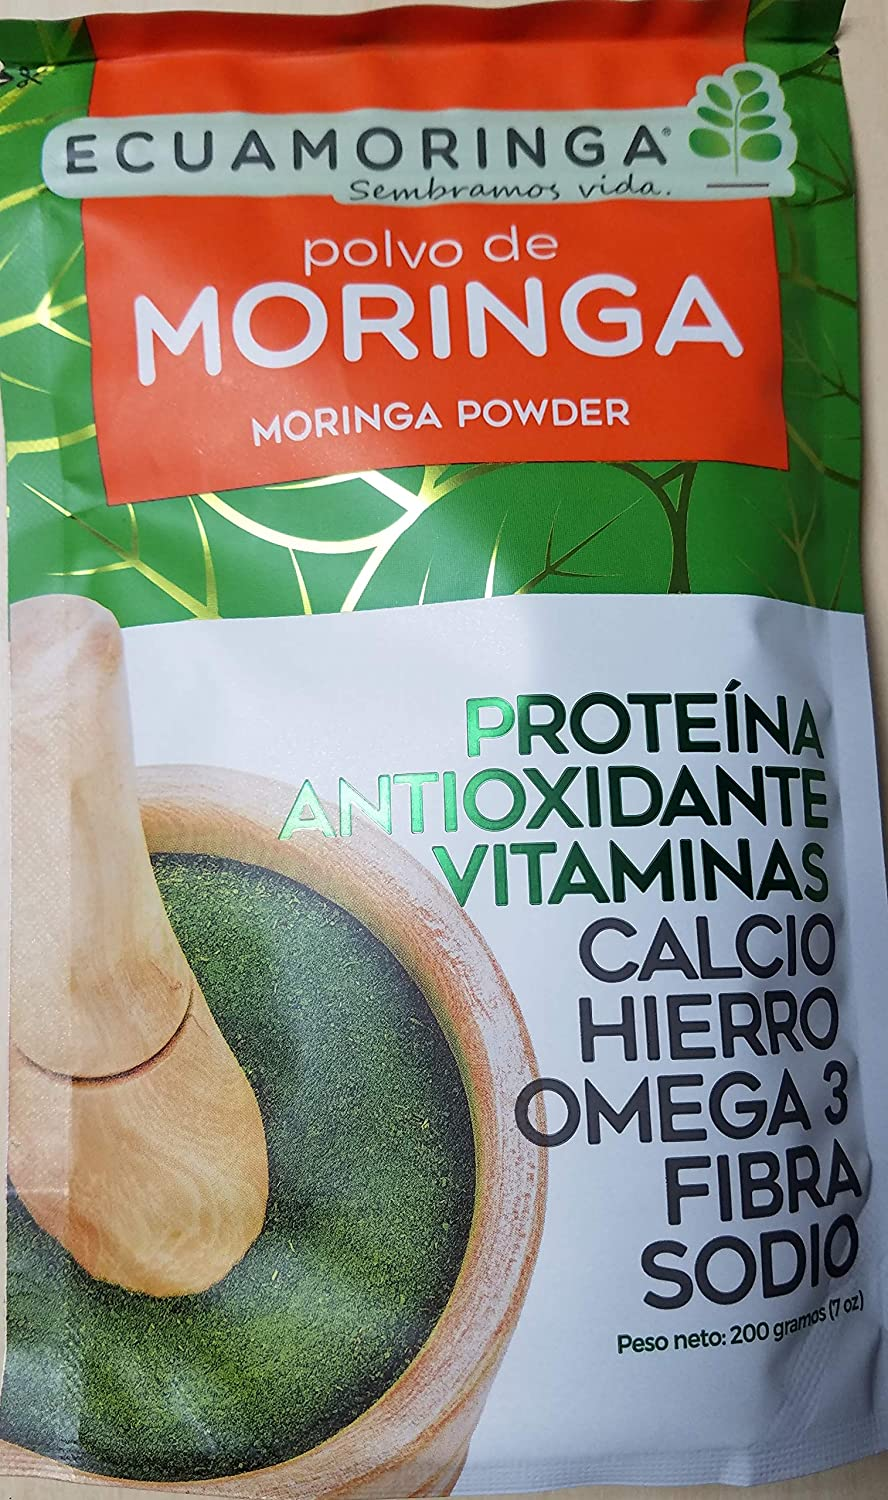 Amazon.com : Moringa Leaf Powder - 7oz (2 Pack) Resealable Bag - 100% Raw From Ecuador - Protein Viatmins Antioxidants : Grocery & Gourmet Food